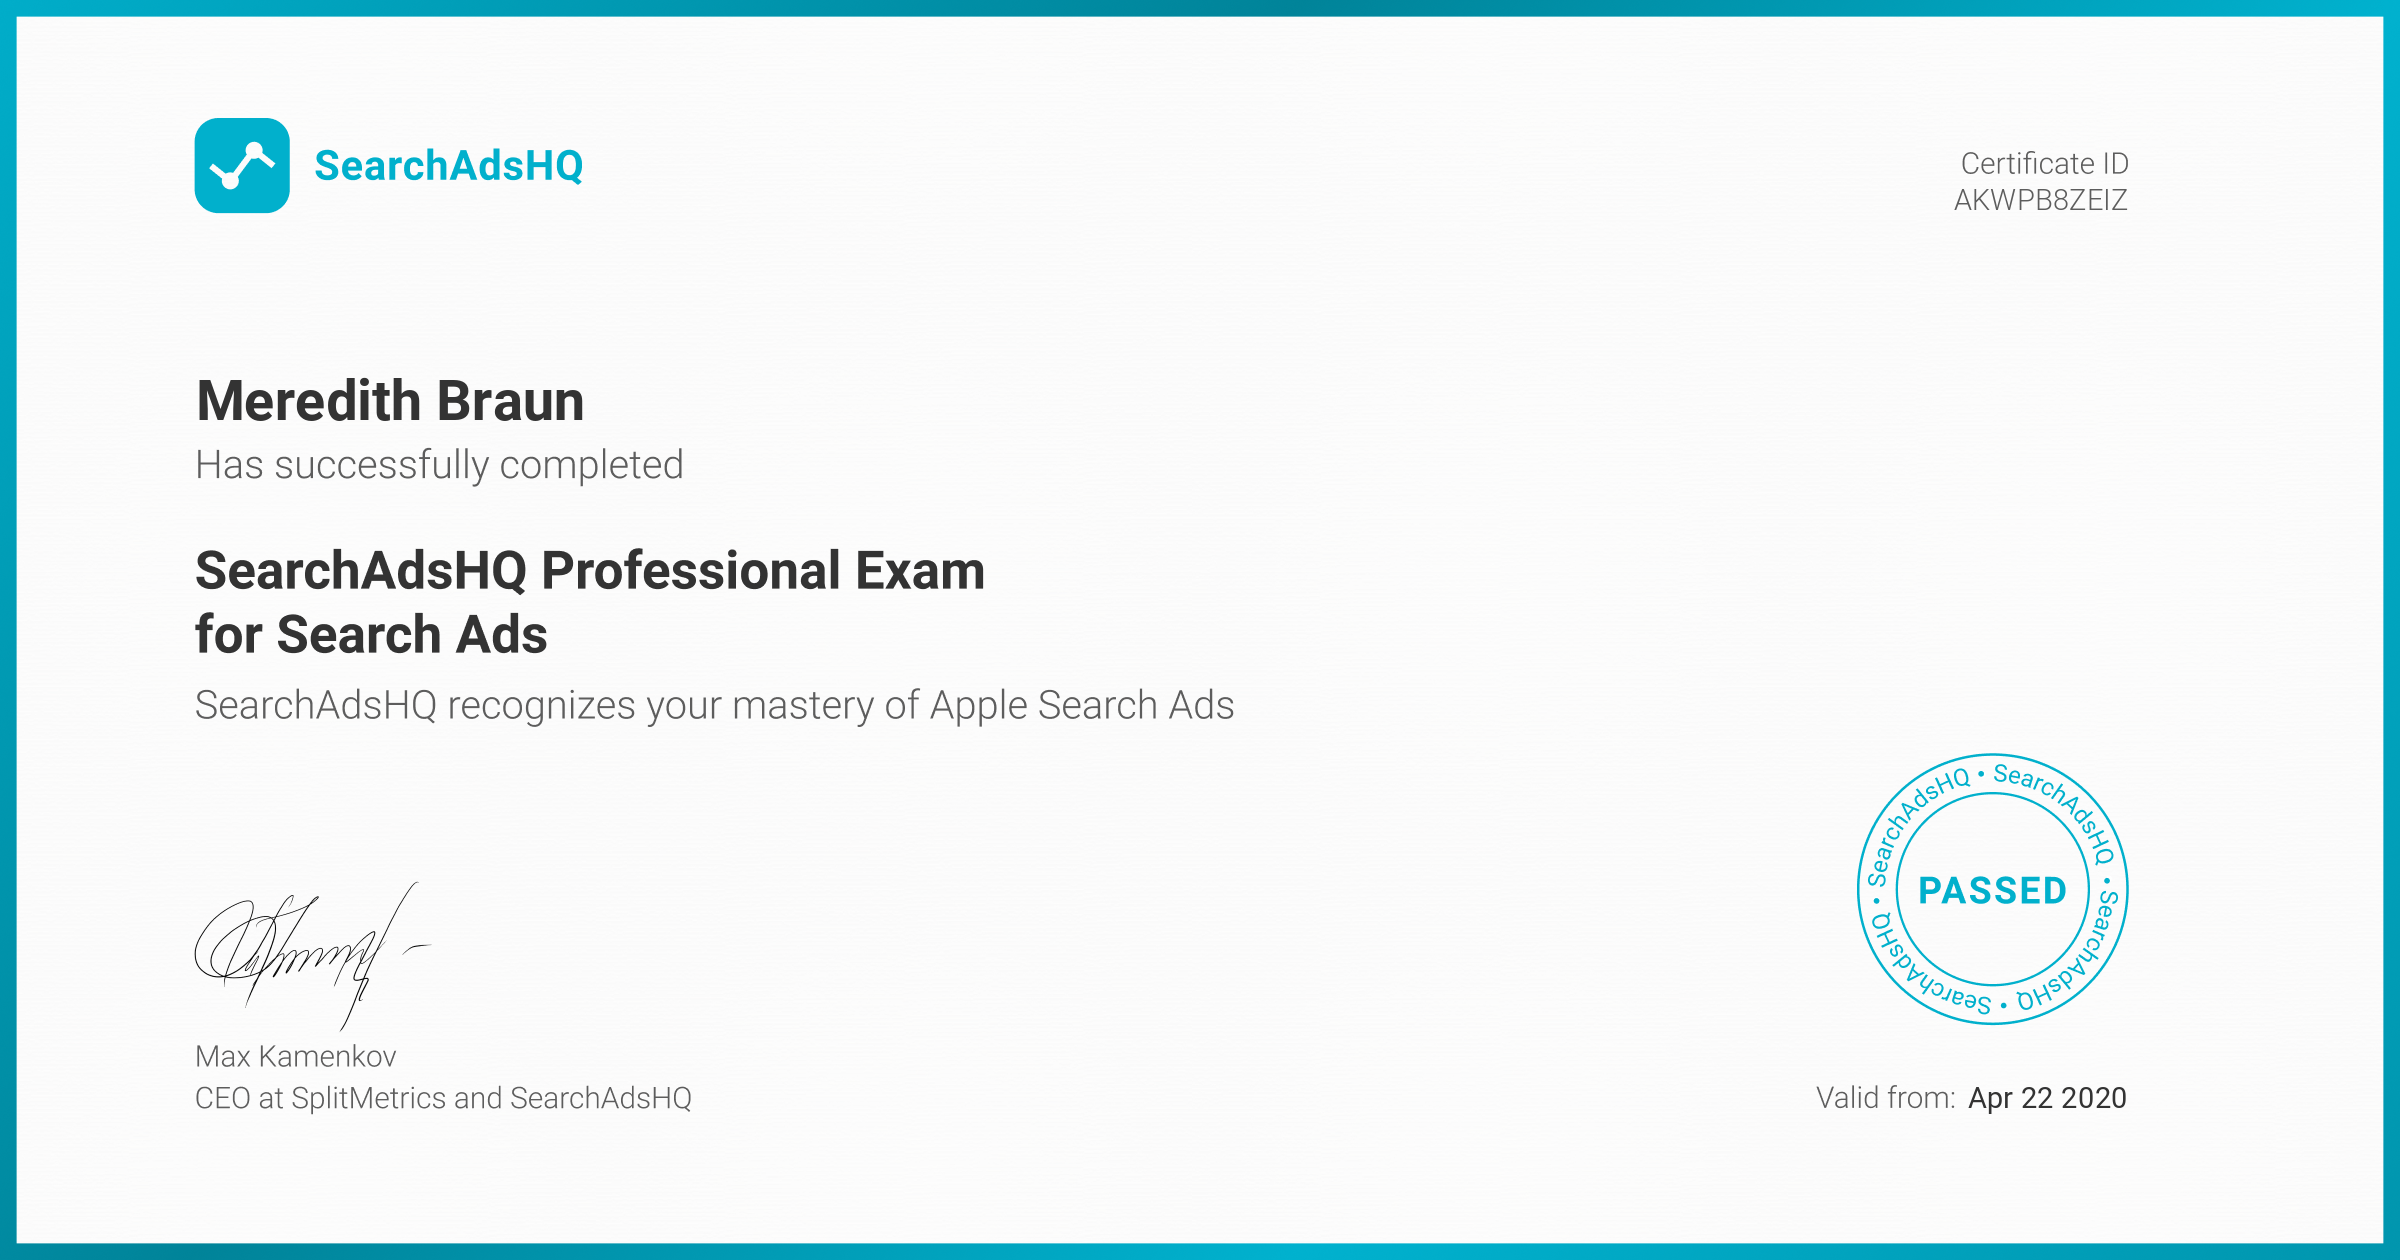 Certificate for Meredith Braun | SearchAdsHQ Professional Exam for Search Ads